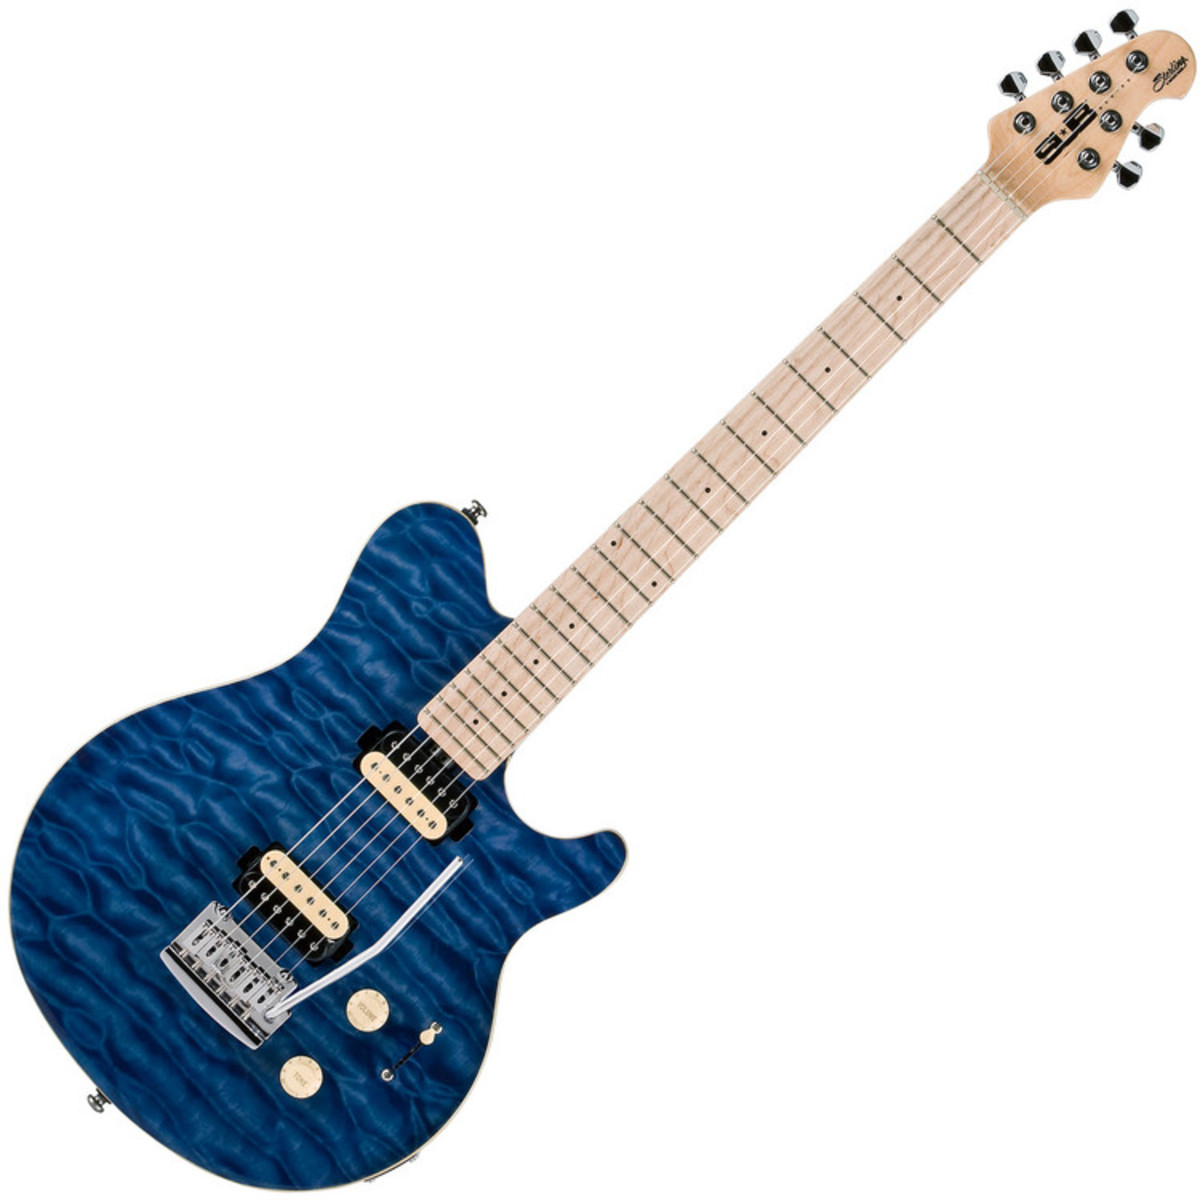 Sterling by music man sub ax3 guitar mn transparent blue for The sterling